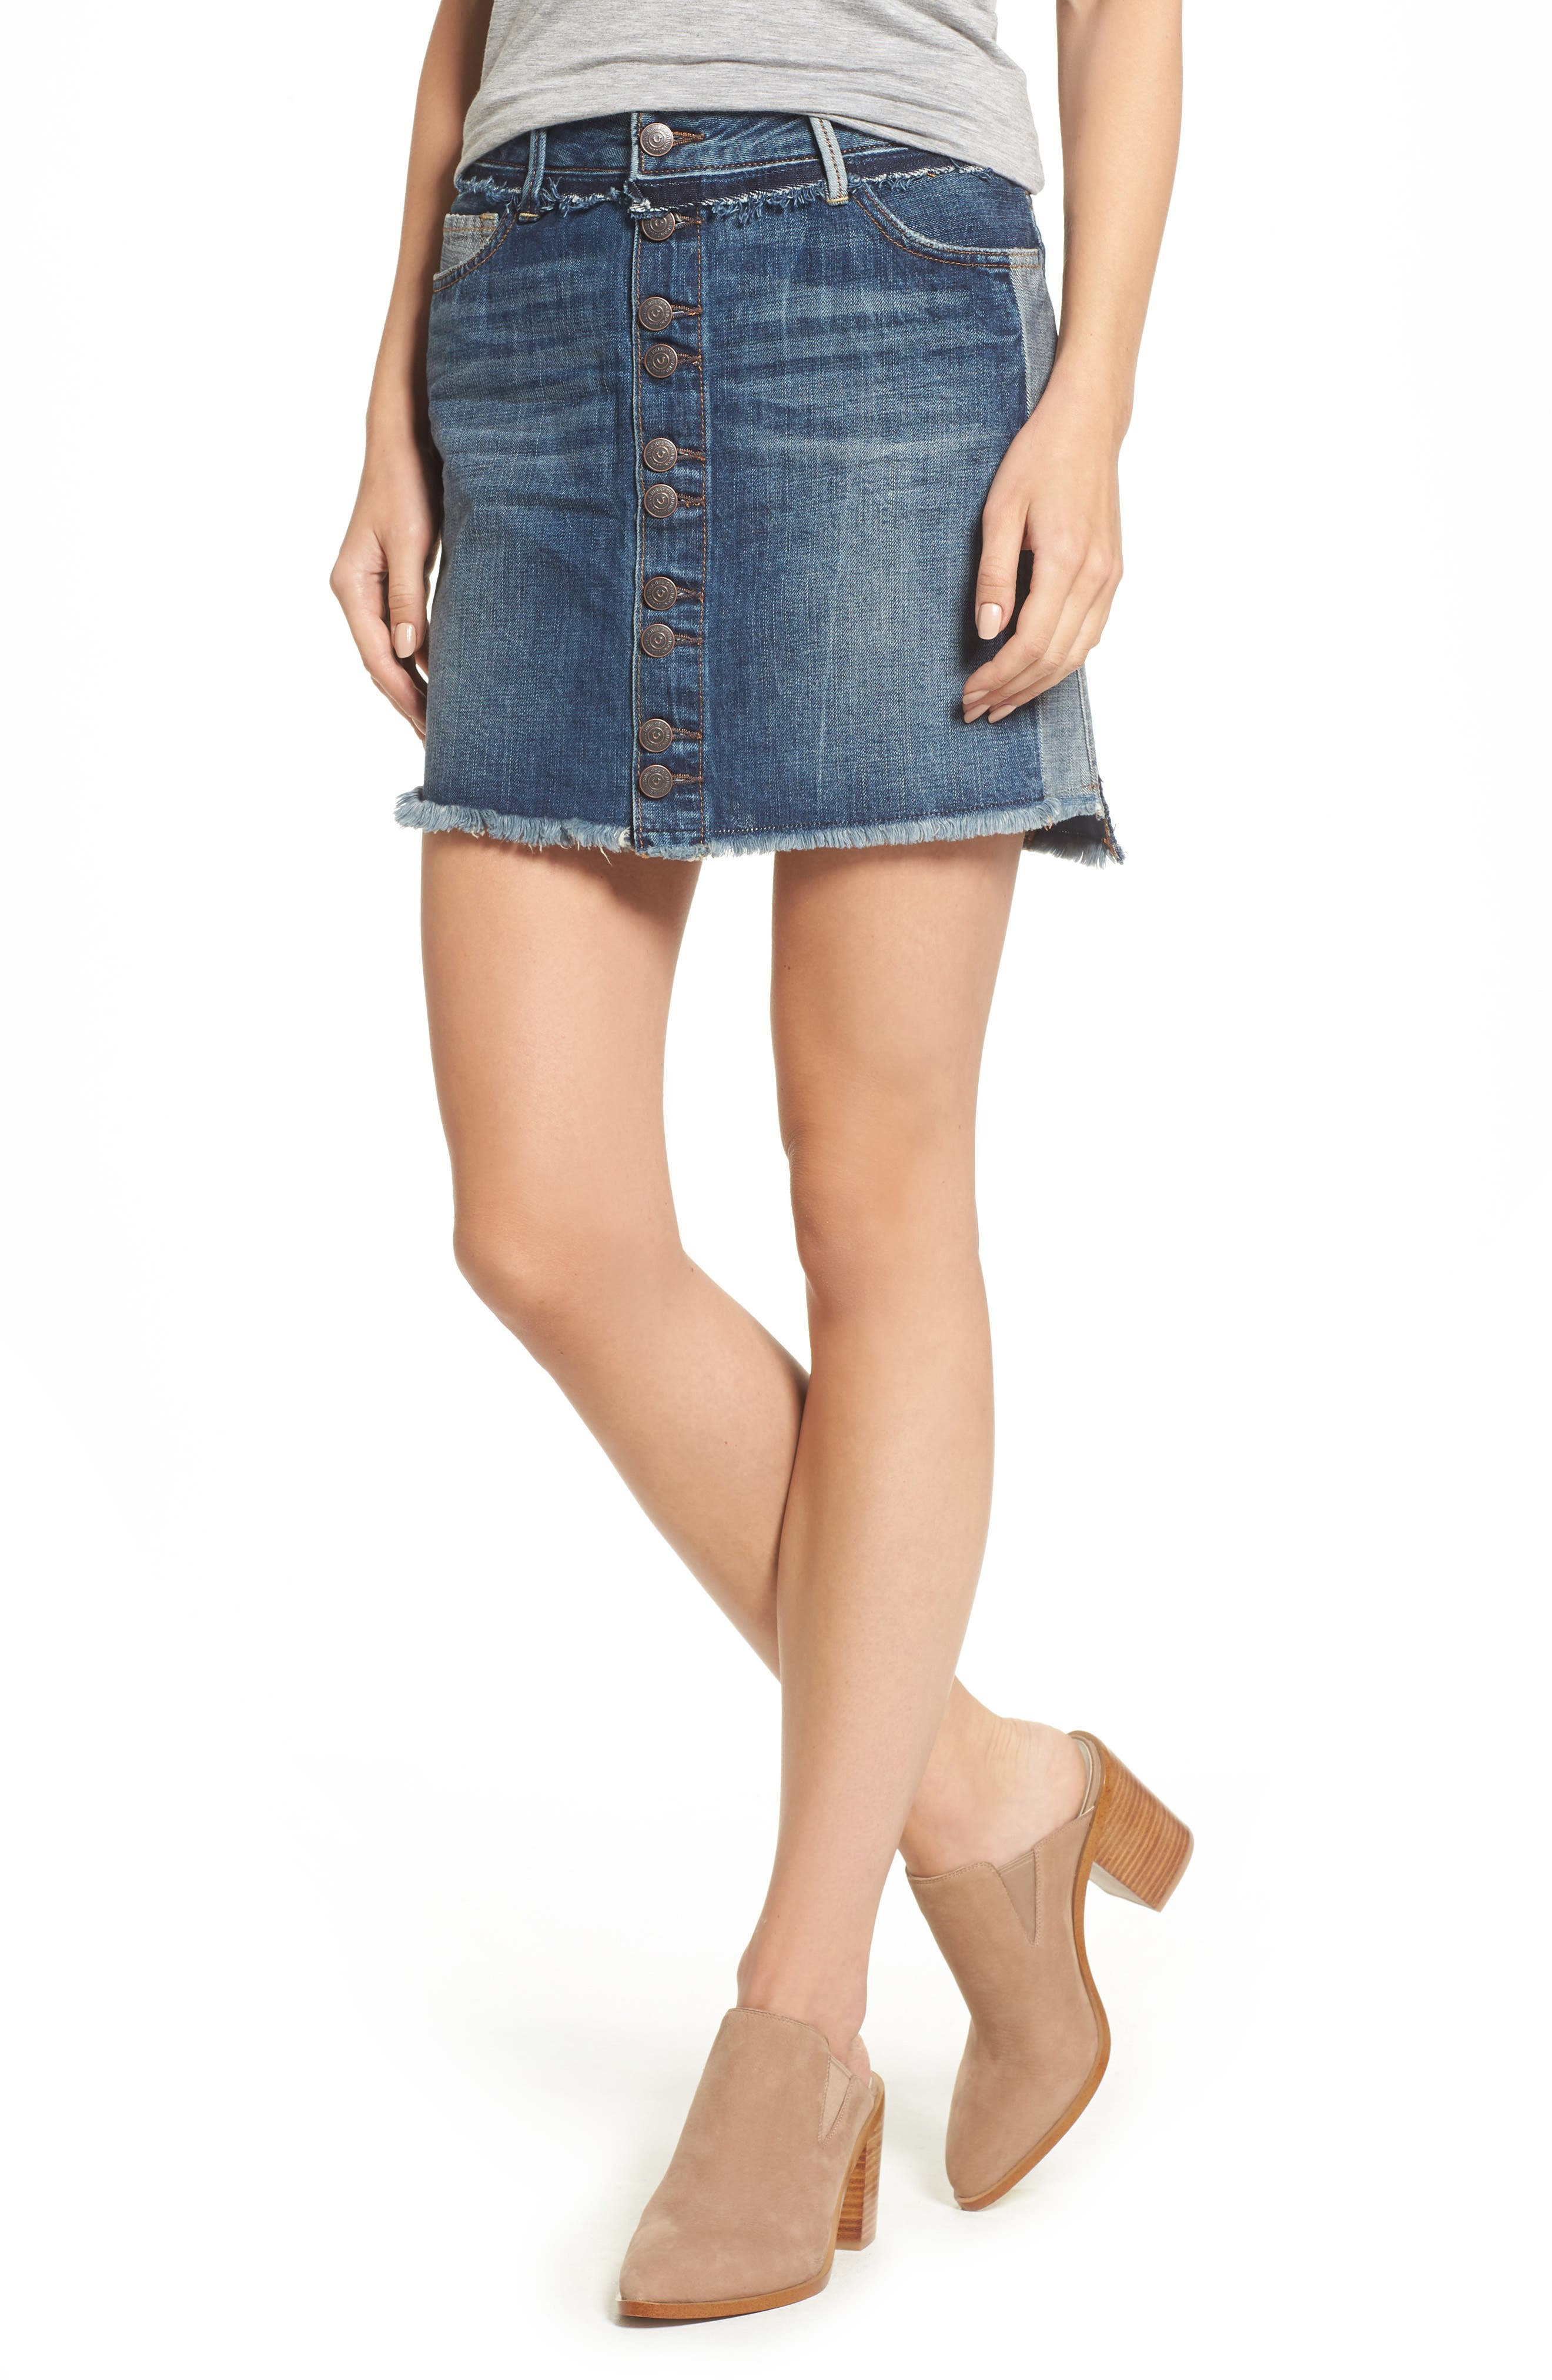 True Religion Brand Jeans Deconstructed Denim Skirt